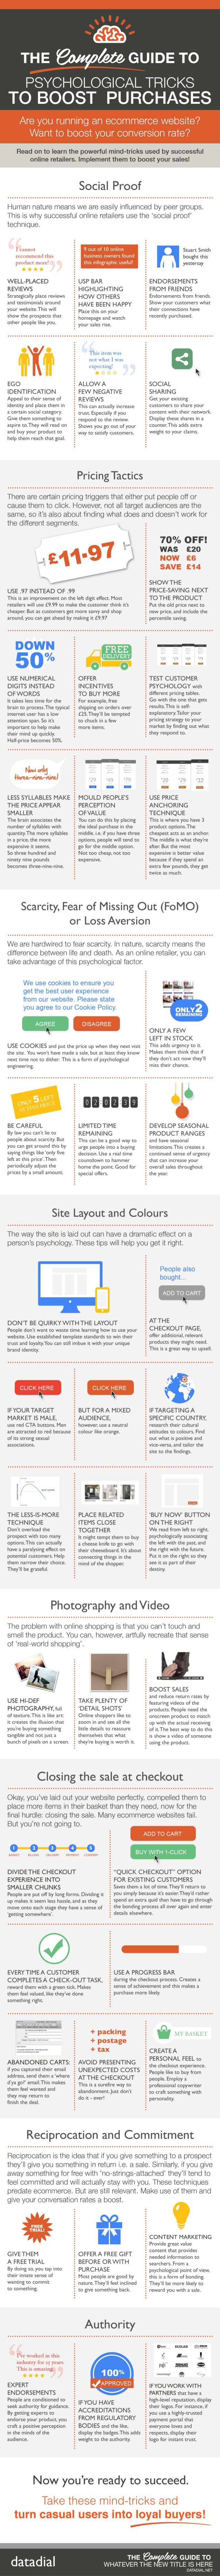 Increase eCommerce conversion rate